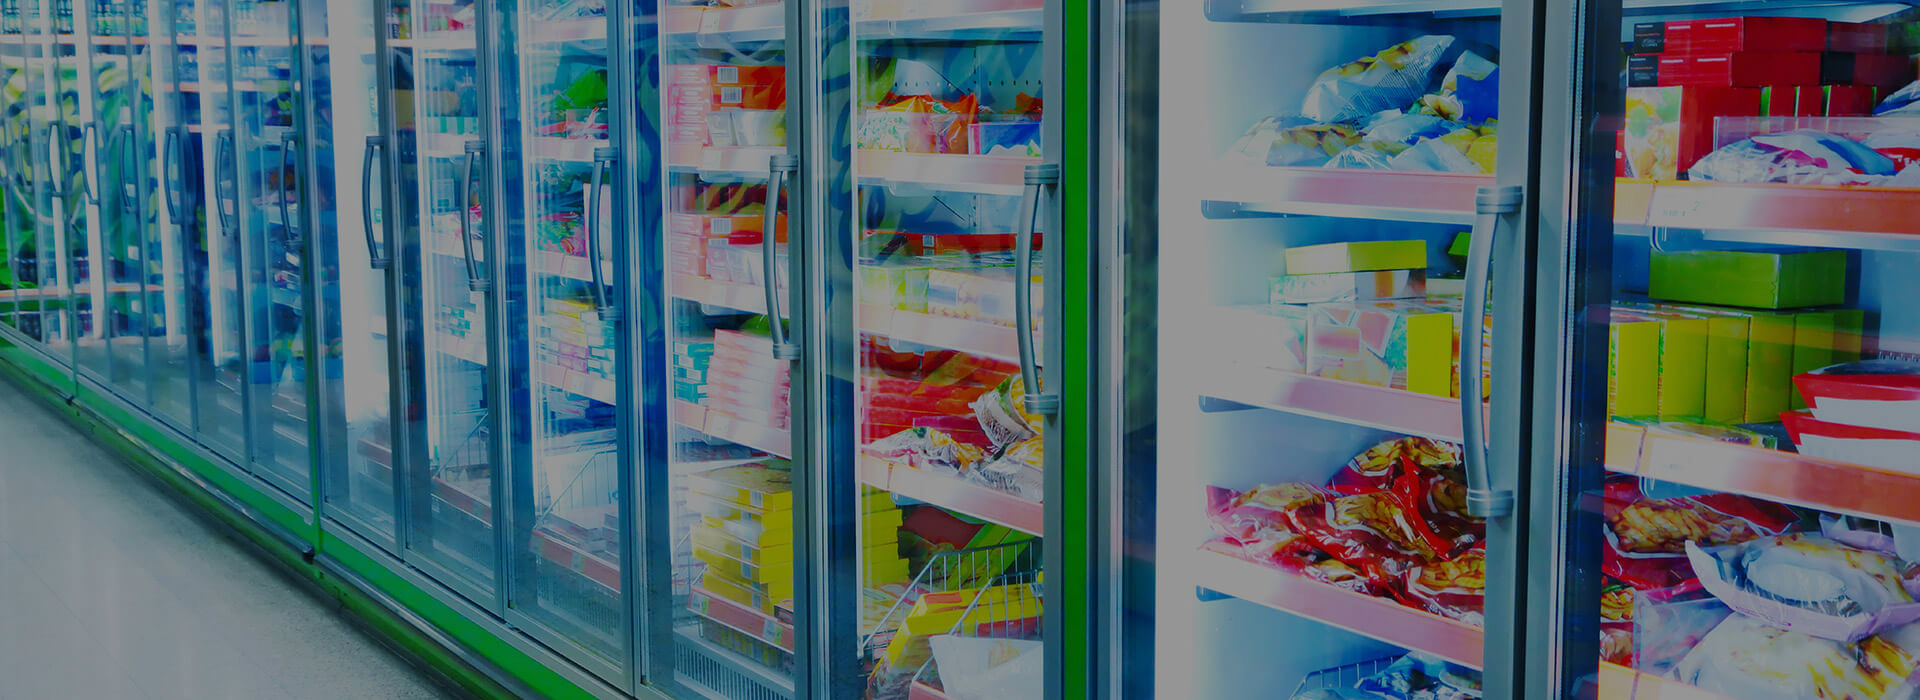 Commercial Refrigerators & Catering Equipment